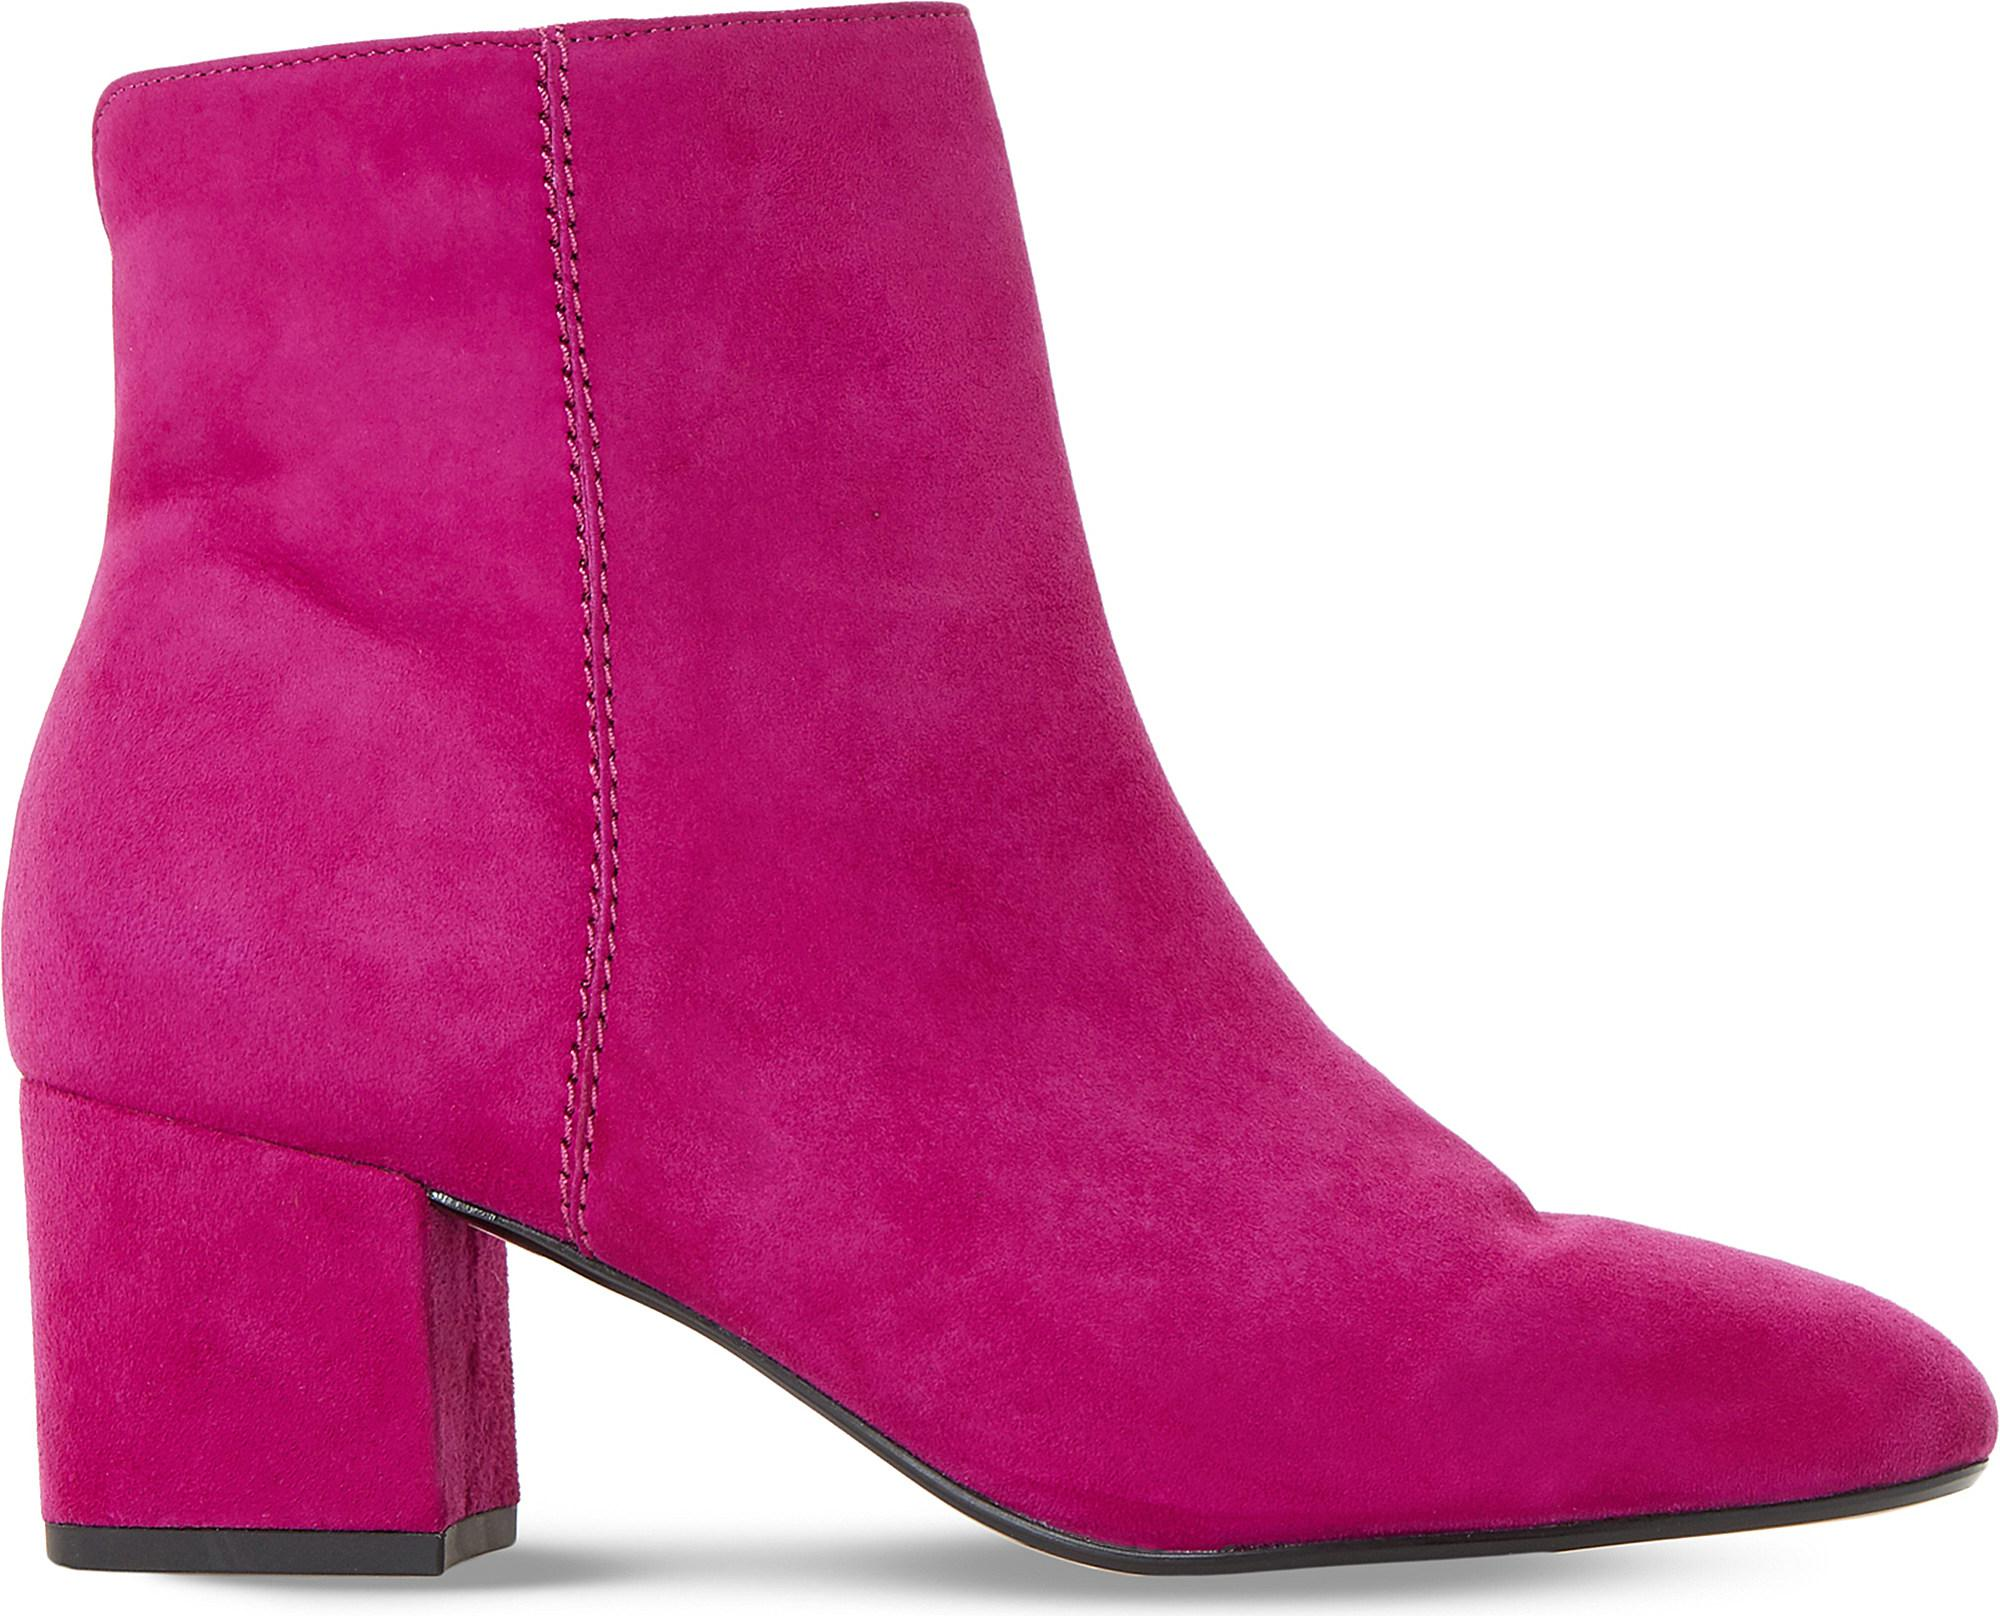 Dune Olyvea Suede Ankle Boots in Pink